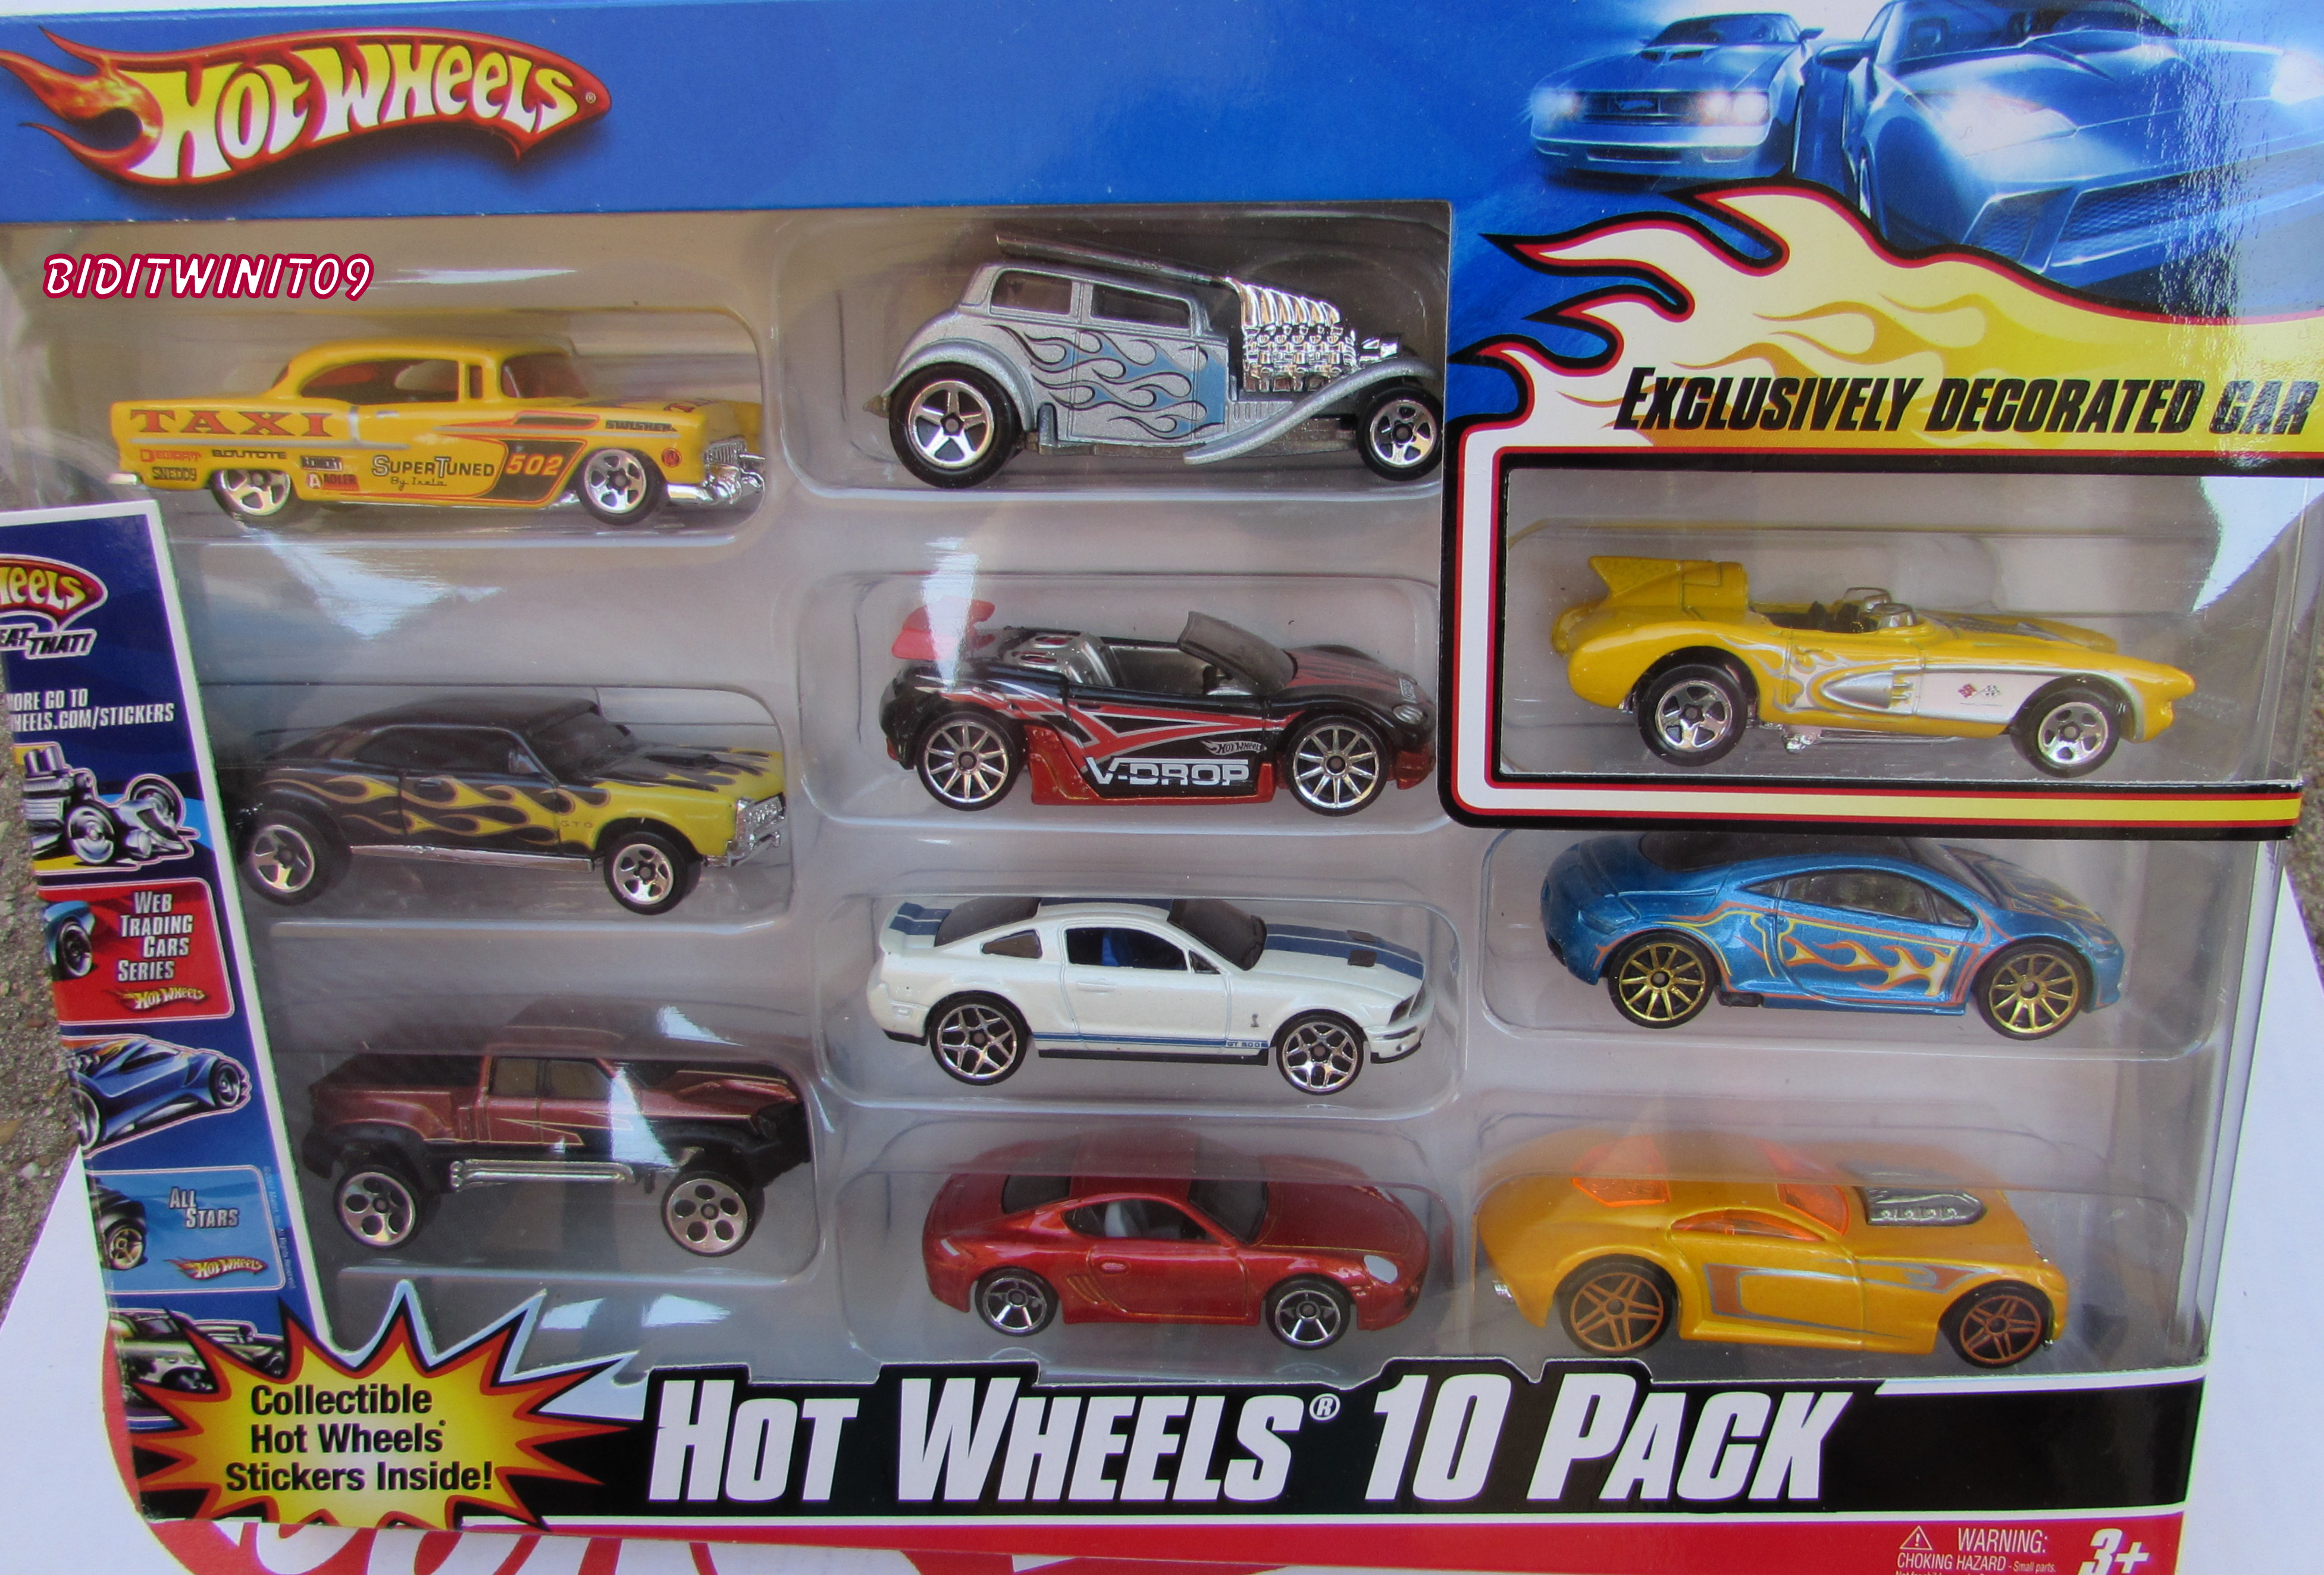 HOT WHEELS 10 CAR PACK SHELBY CORVETTE NISSAN EXCLUSIVE DECORATED CAR E+